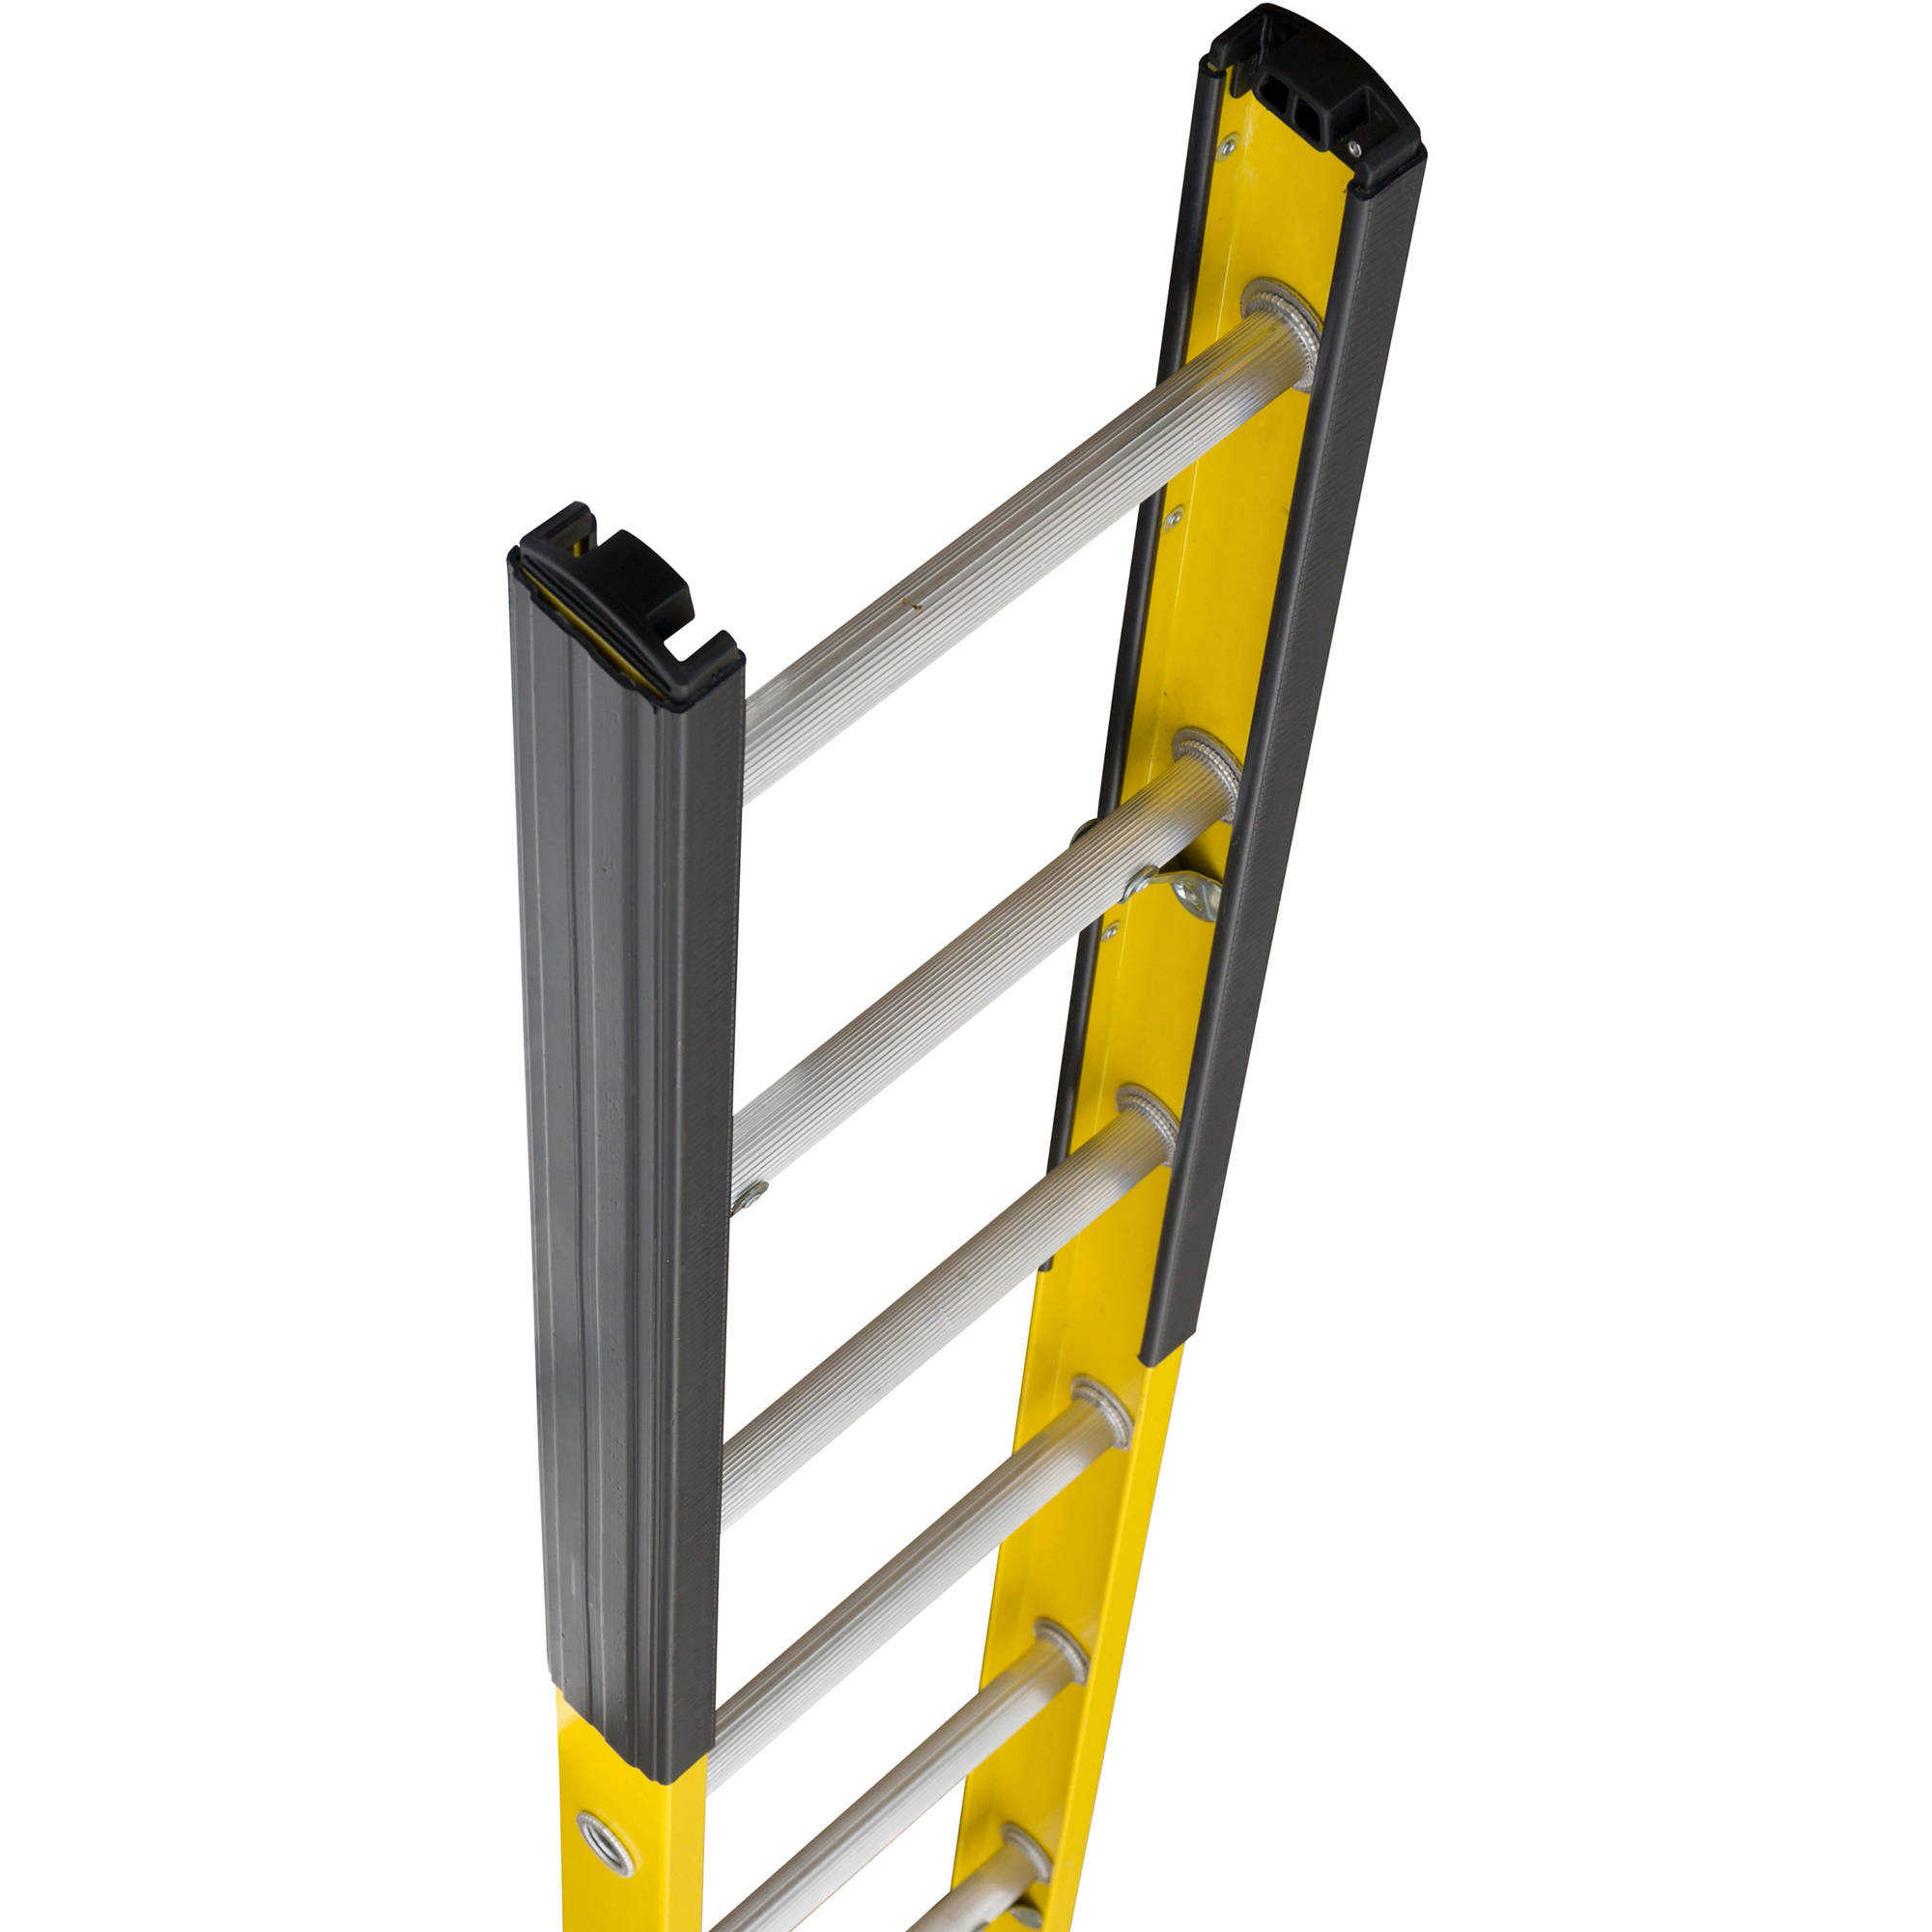 Louisville Ladder FE8912 12 ft. Fiberglass Manhole Ladder, Type IAA, 375 Lbs Load Capacity